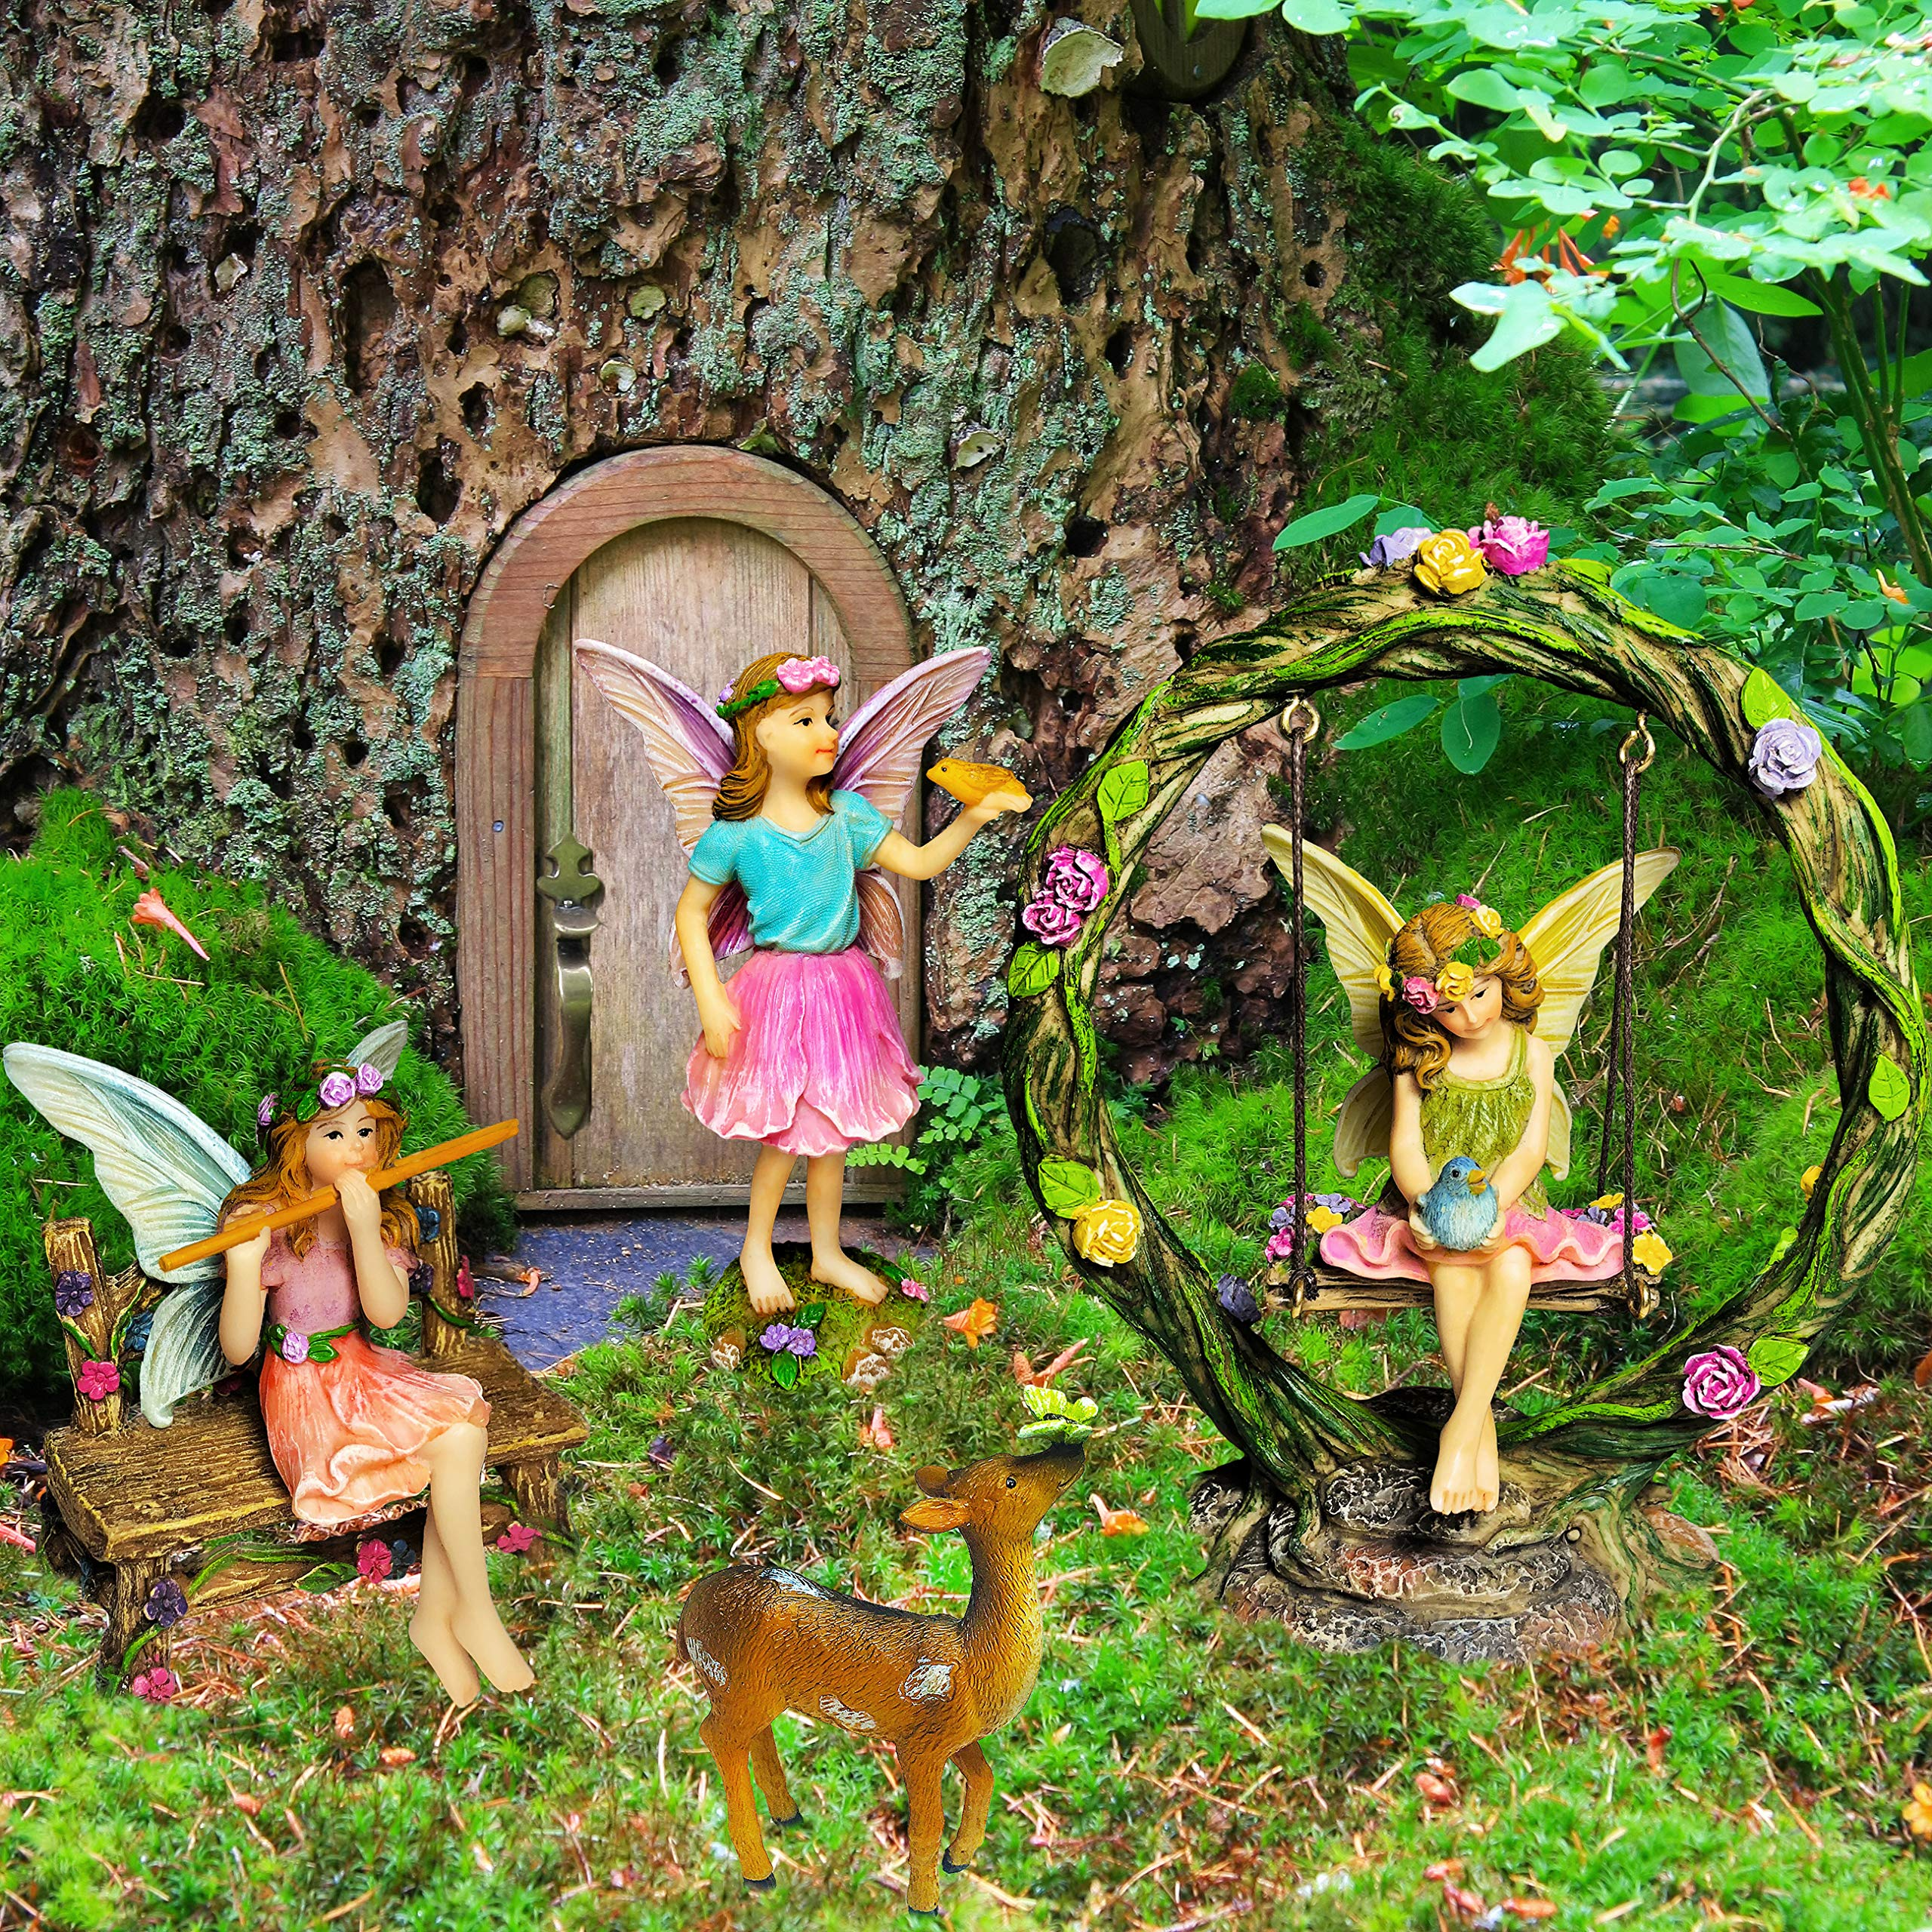 Mood Lab Fairy Garden Kit - Miniature Figurines with Accessories Swing Set of 6 pcs - Hand Painted for Outdoor or House Decor by Mood Lab (Image #6)